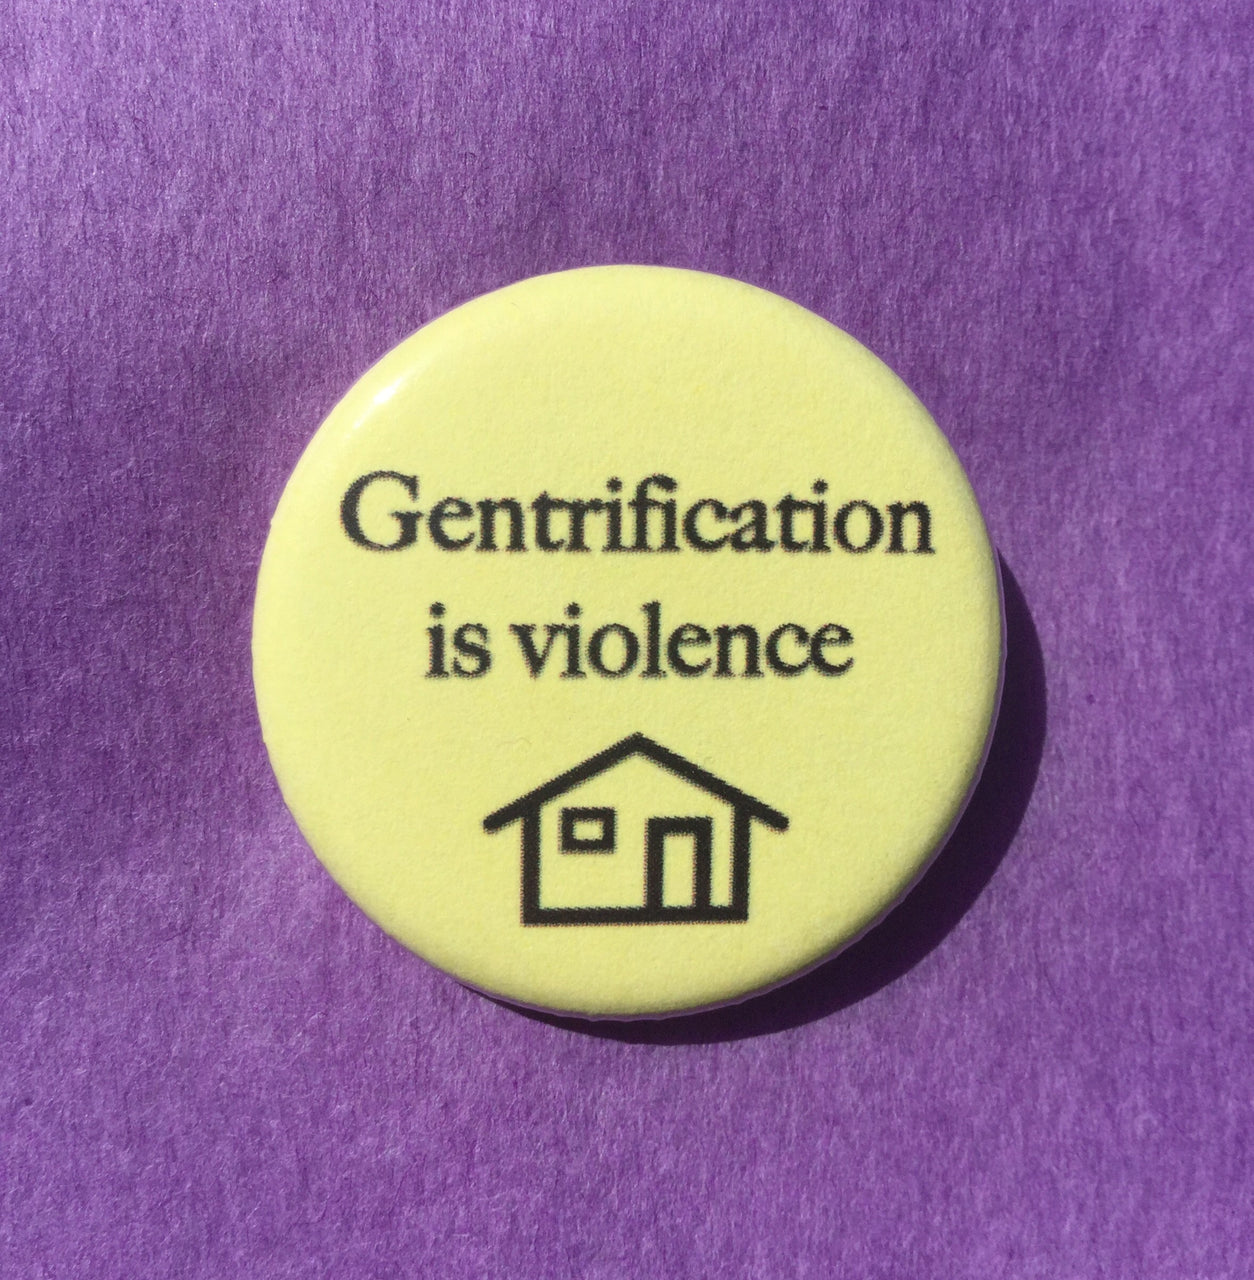 Gentrification is violence - Radical Buttons